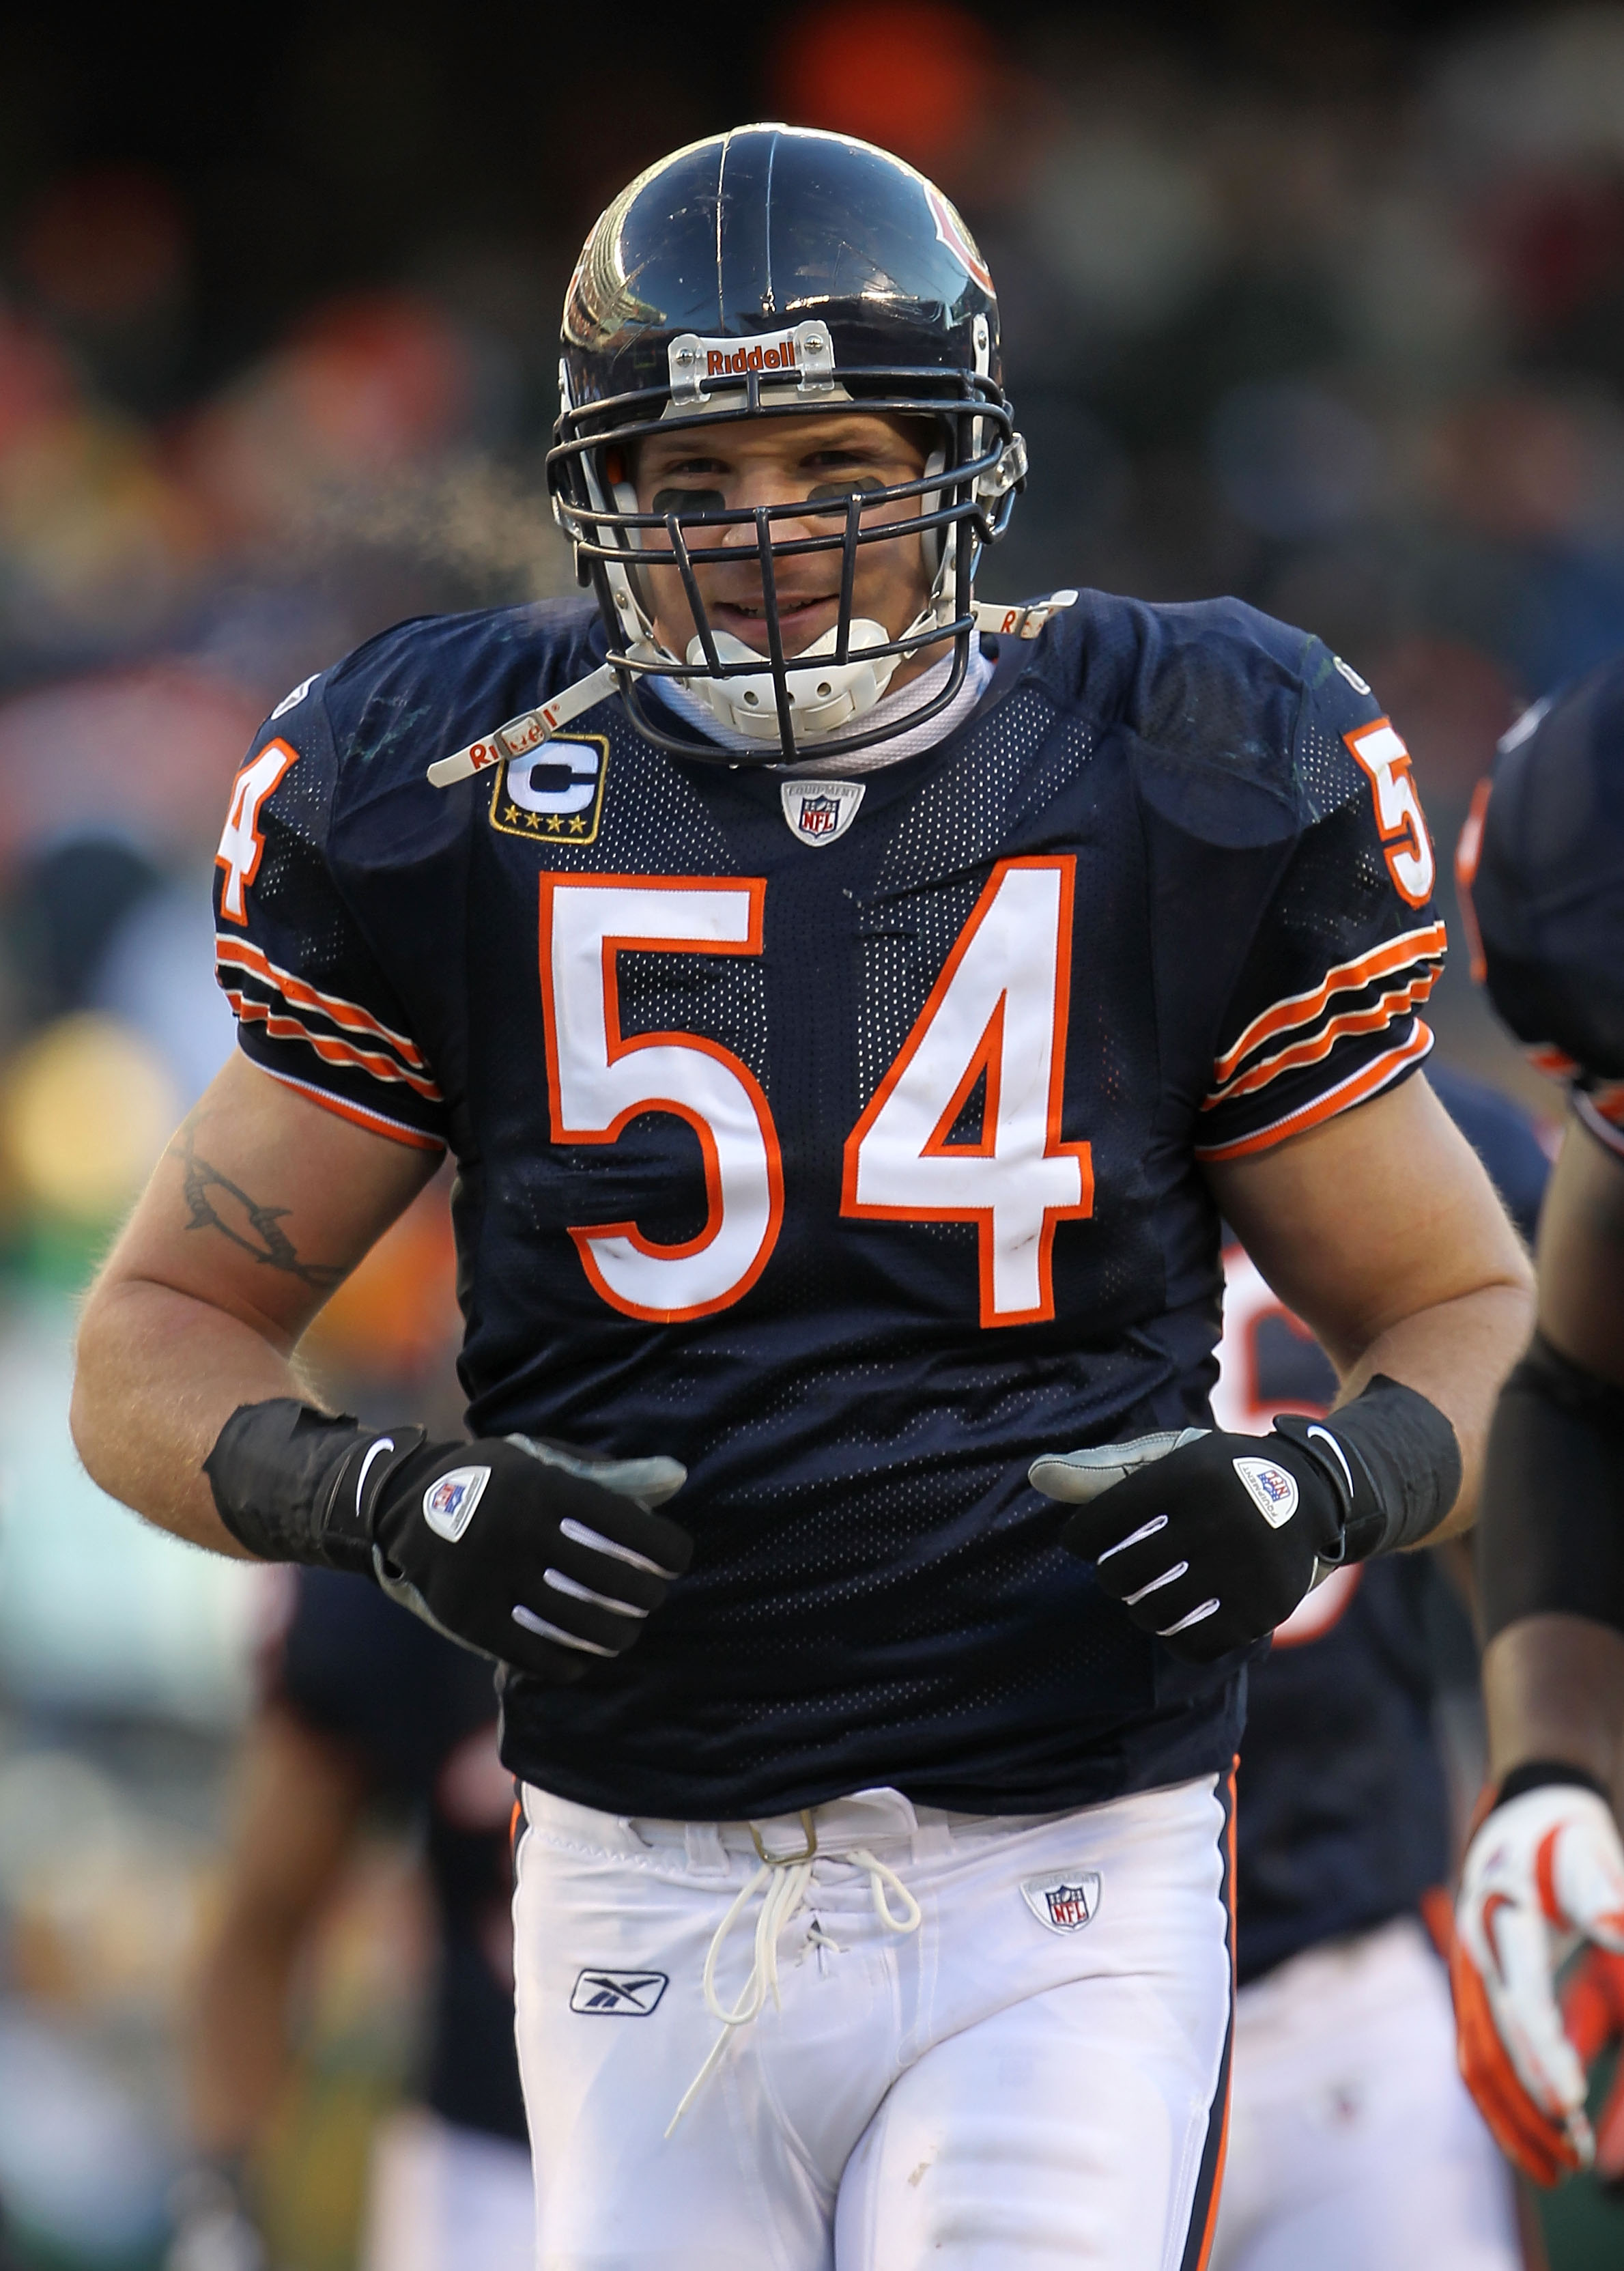 CHICAGO, IL - JANUARY 23:  Brian Urlacher #54 of the Chicago Bears smiles while taking on the Green Bay Packers in the NFC Championship Game at Soldier Field on January 23, 2011 in Chicago, Illinois.  (Photo by Jamie Squire/Getty Images)